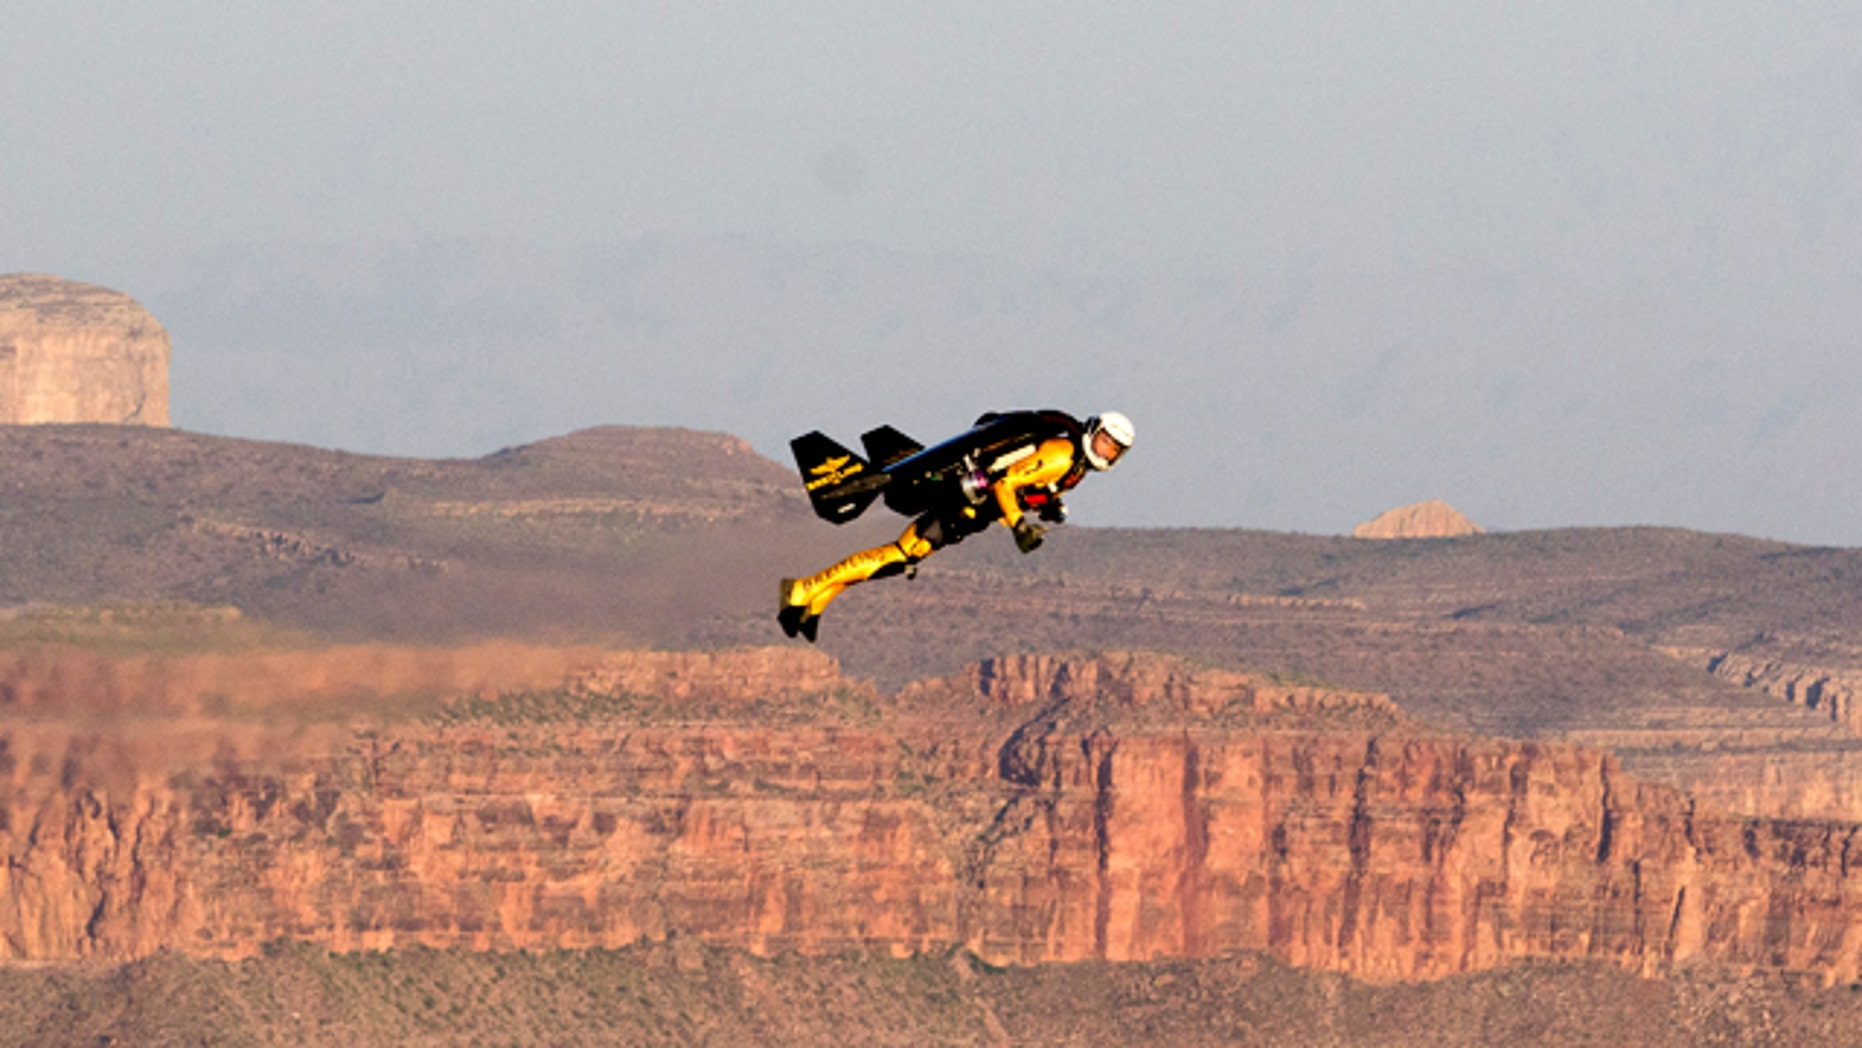 May 8, 2011: Yves Rossy, the adventurer better known as Jetman, makes an historic first U.S. flight over the Grand Canyon.